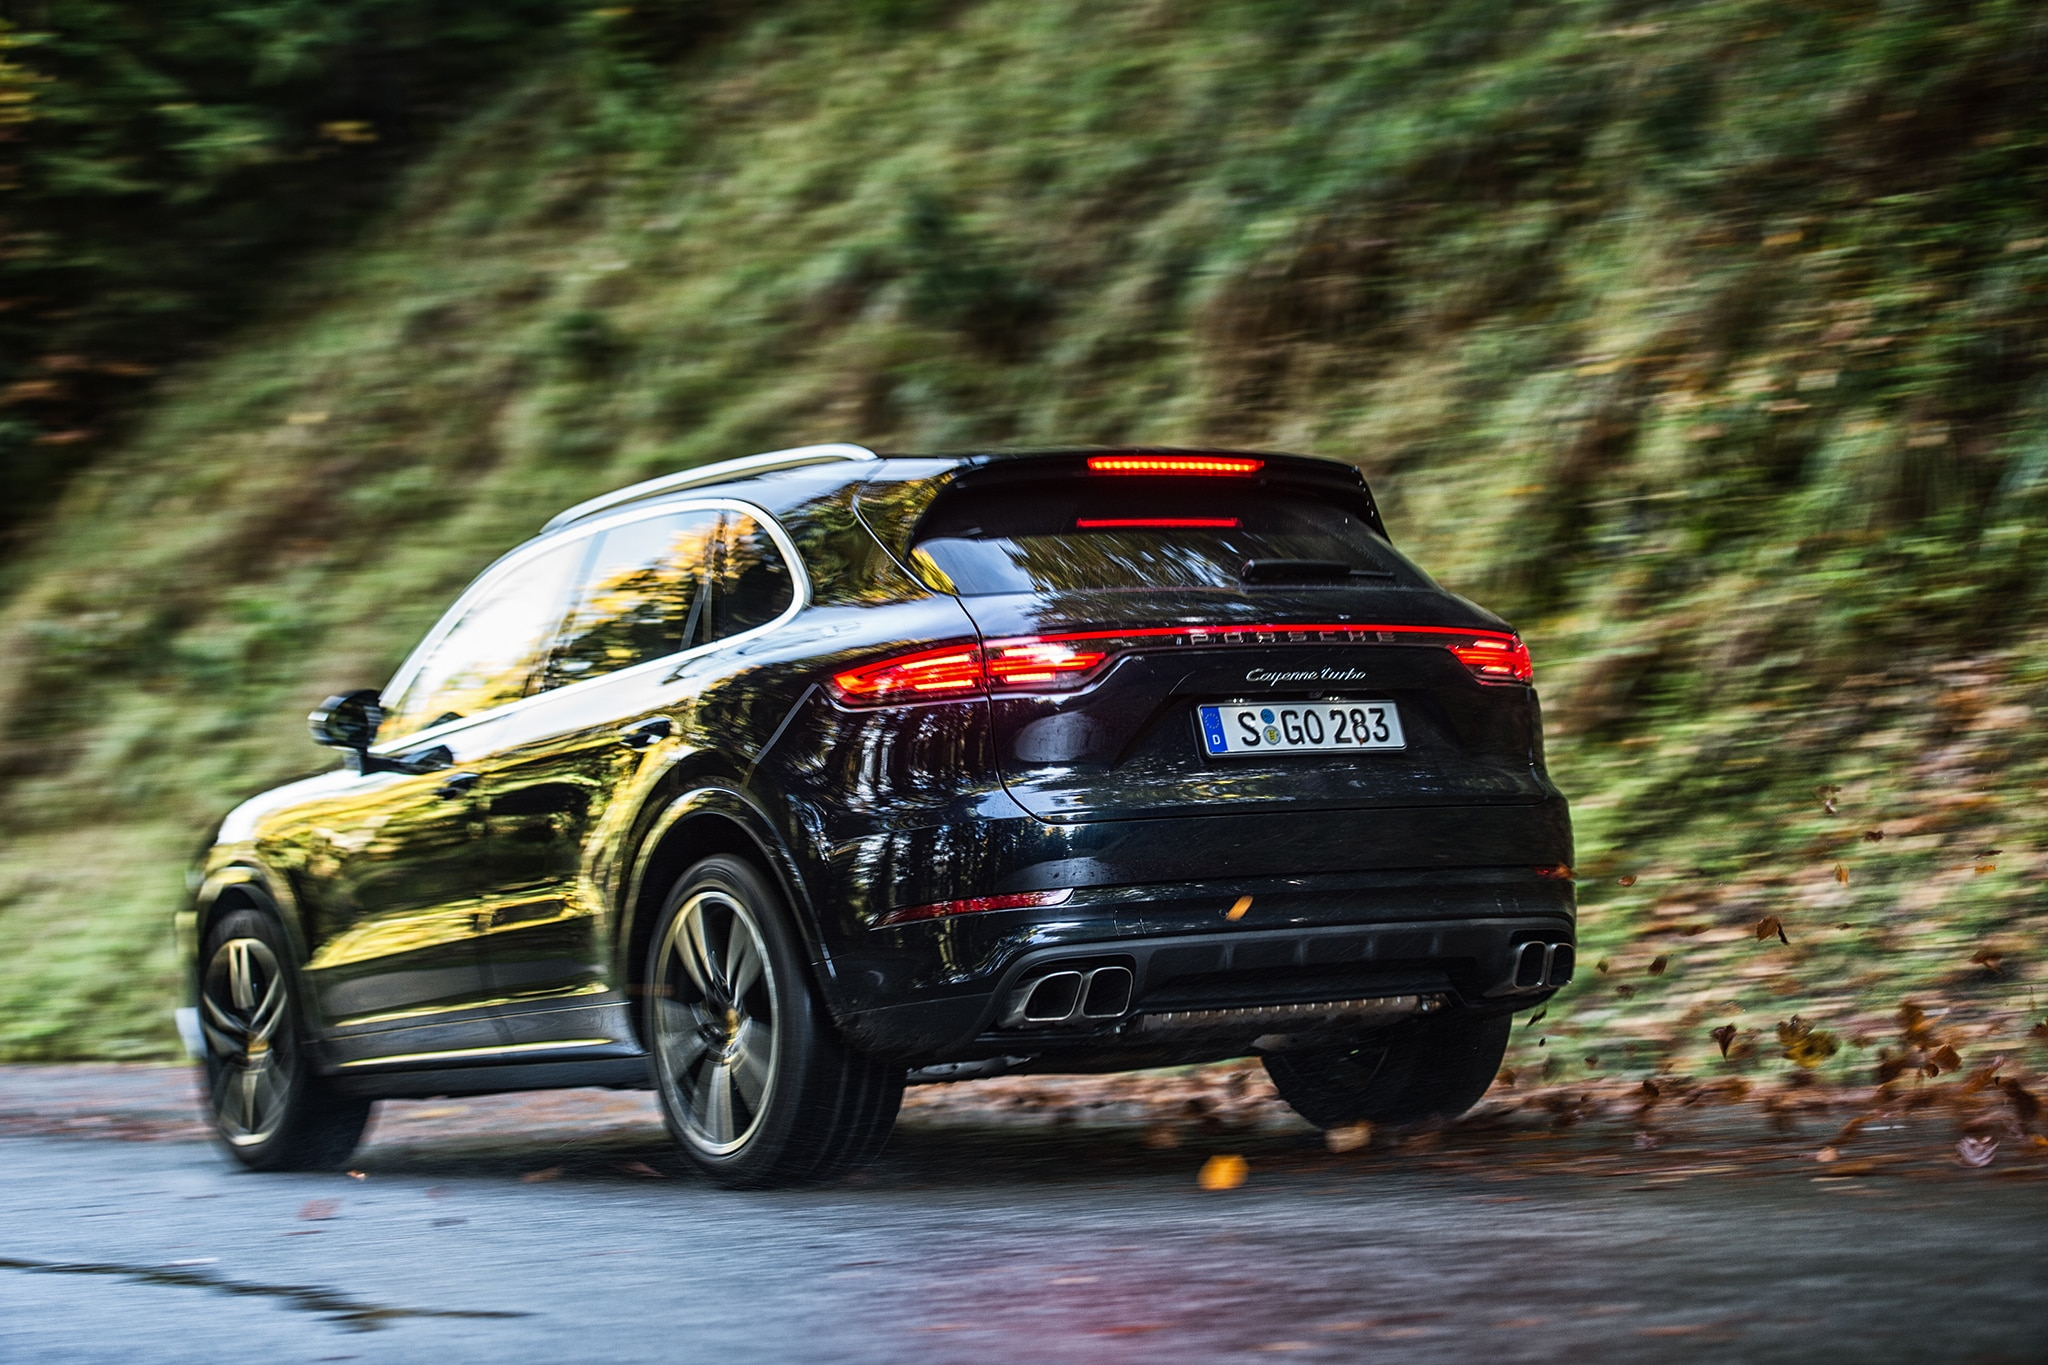 39 All New 2019 Porsche Cayenne Turbo S New Concept